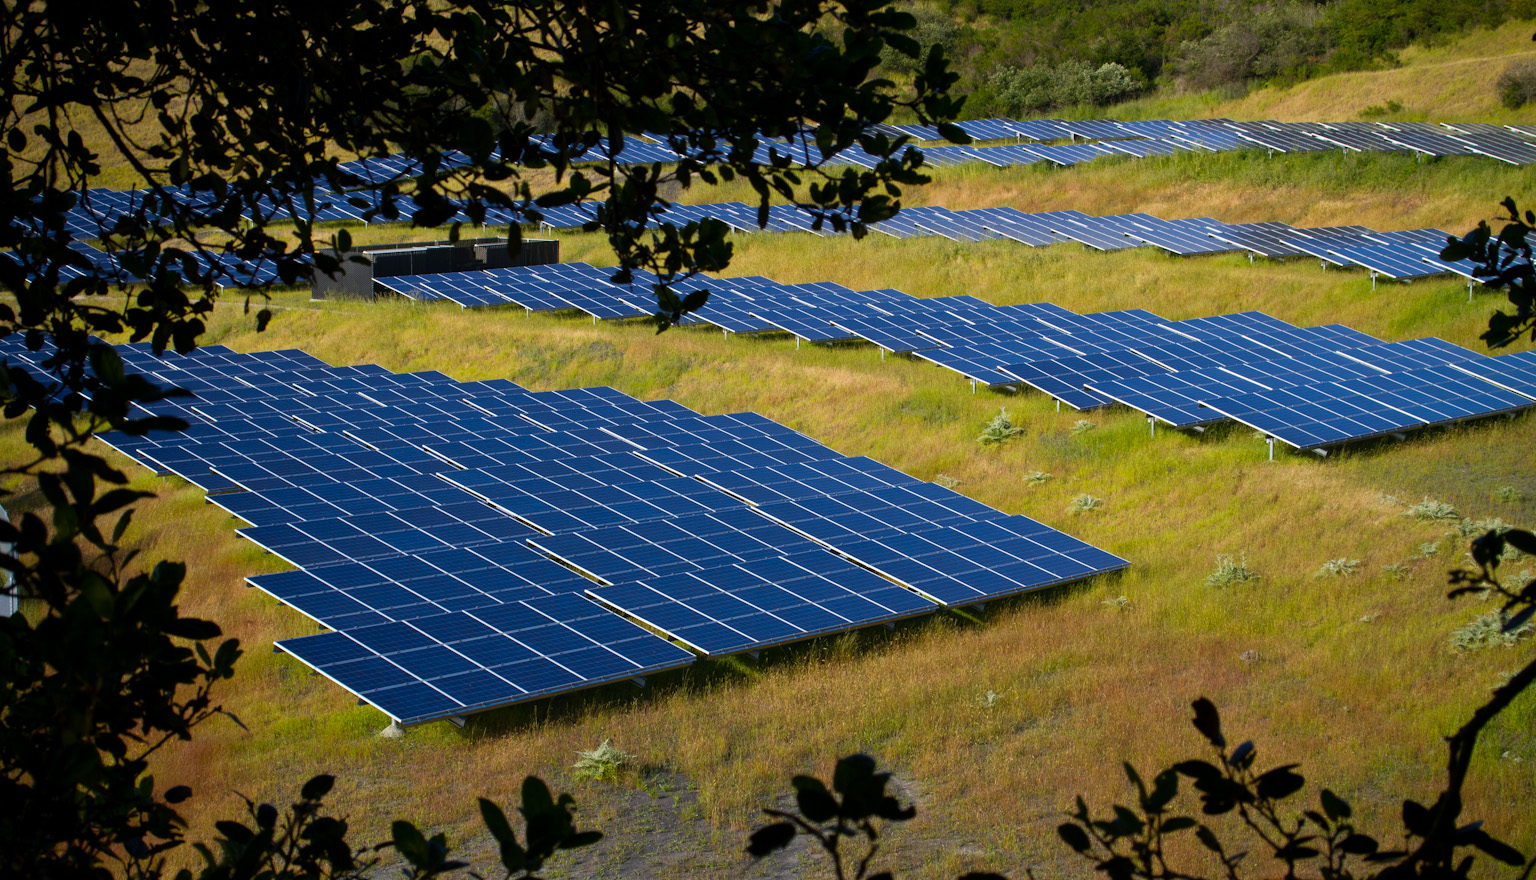 Solar Farm by Michael Mees via a CC BY 2.0